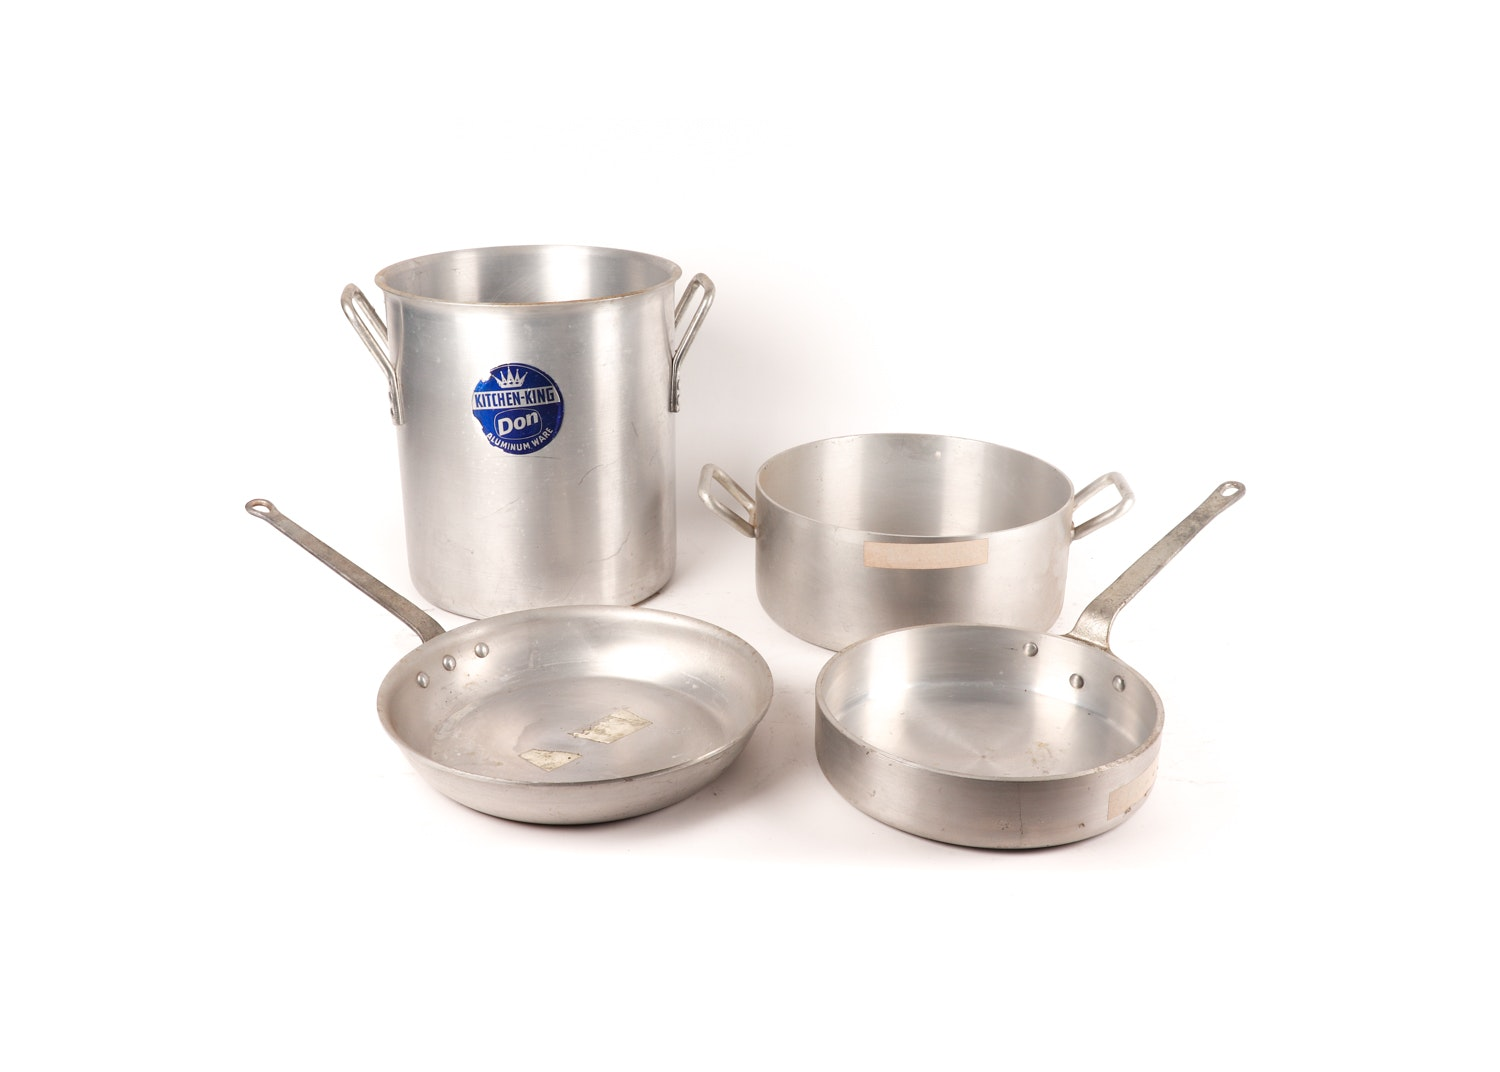 Vintage Aluminum and Stainless Steel Cookware featuring Wear-Ever